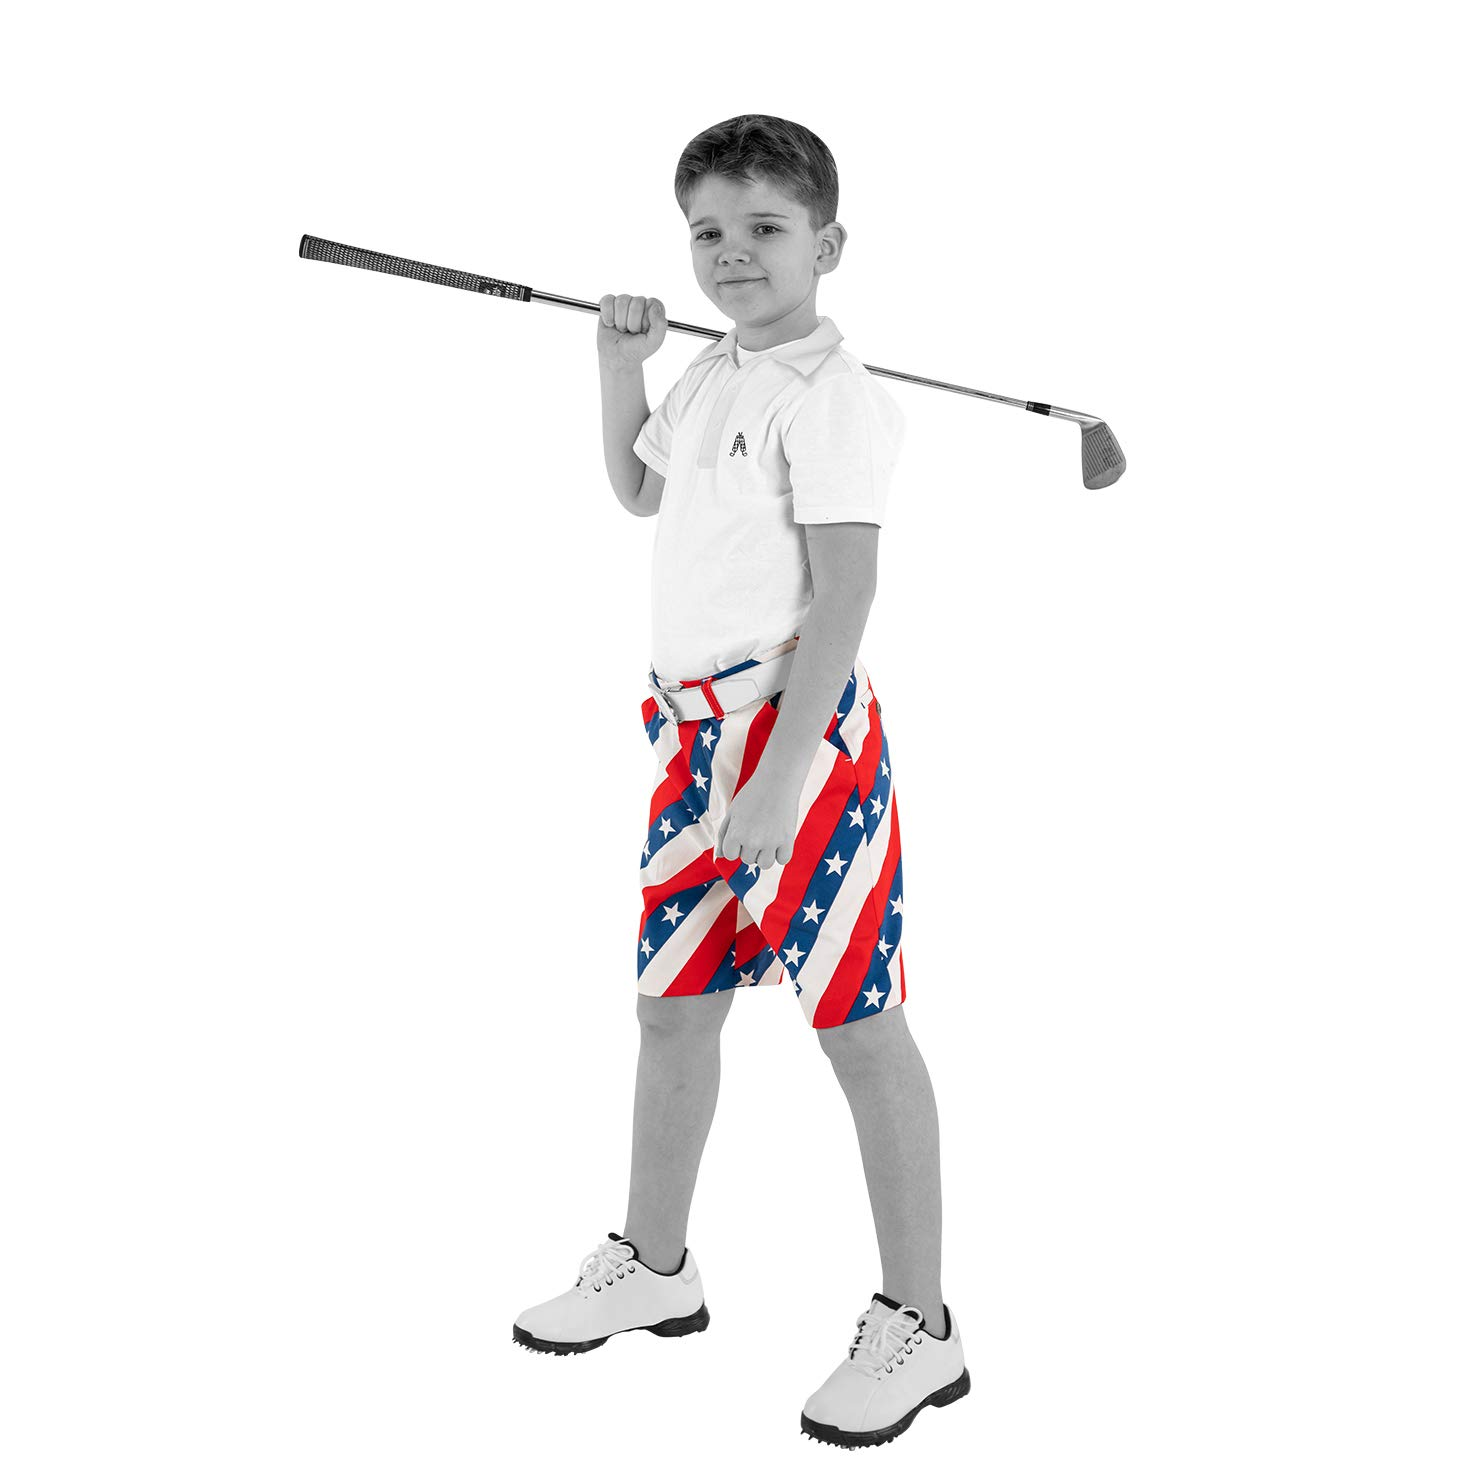 Royal & Awesome Kids Pars and Stripes Bright Golf Shorts - Small Age 8-9 Years by Royal & Awesome